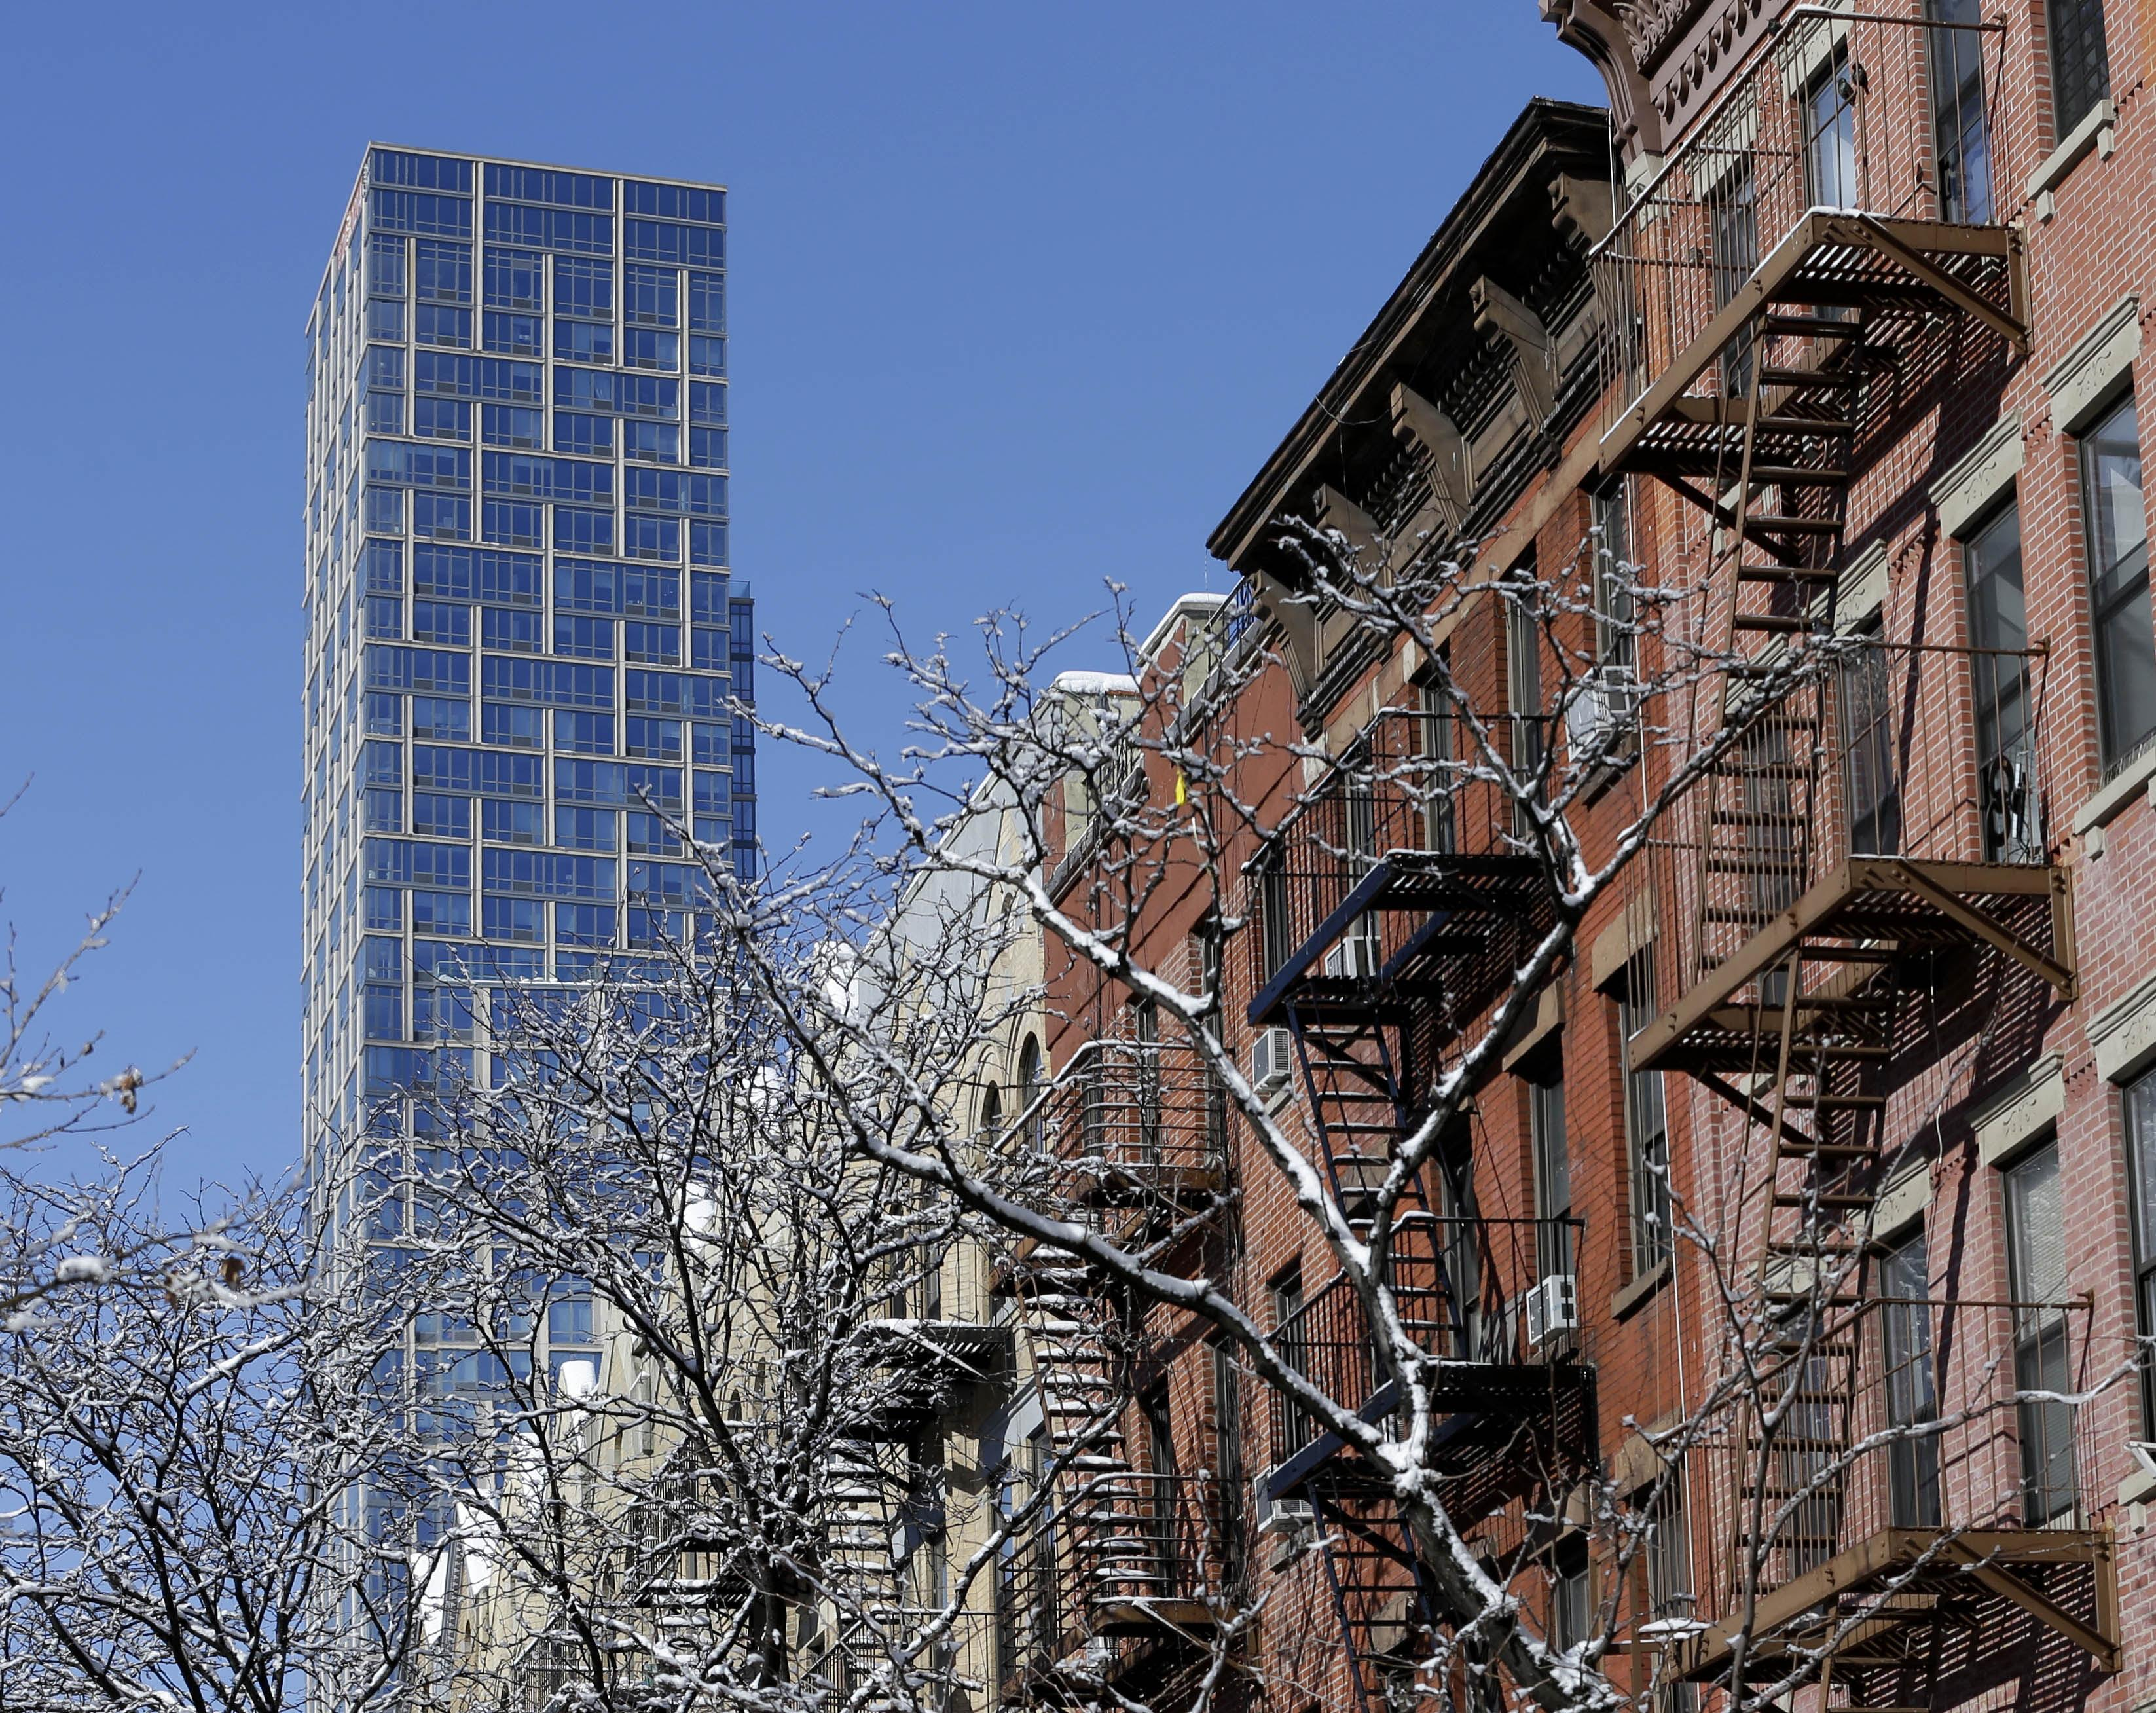 Is rent out of reach? Study shows how 11 US cities stack up